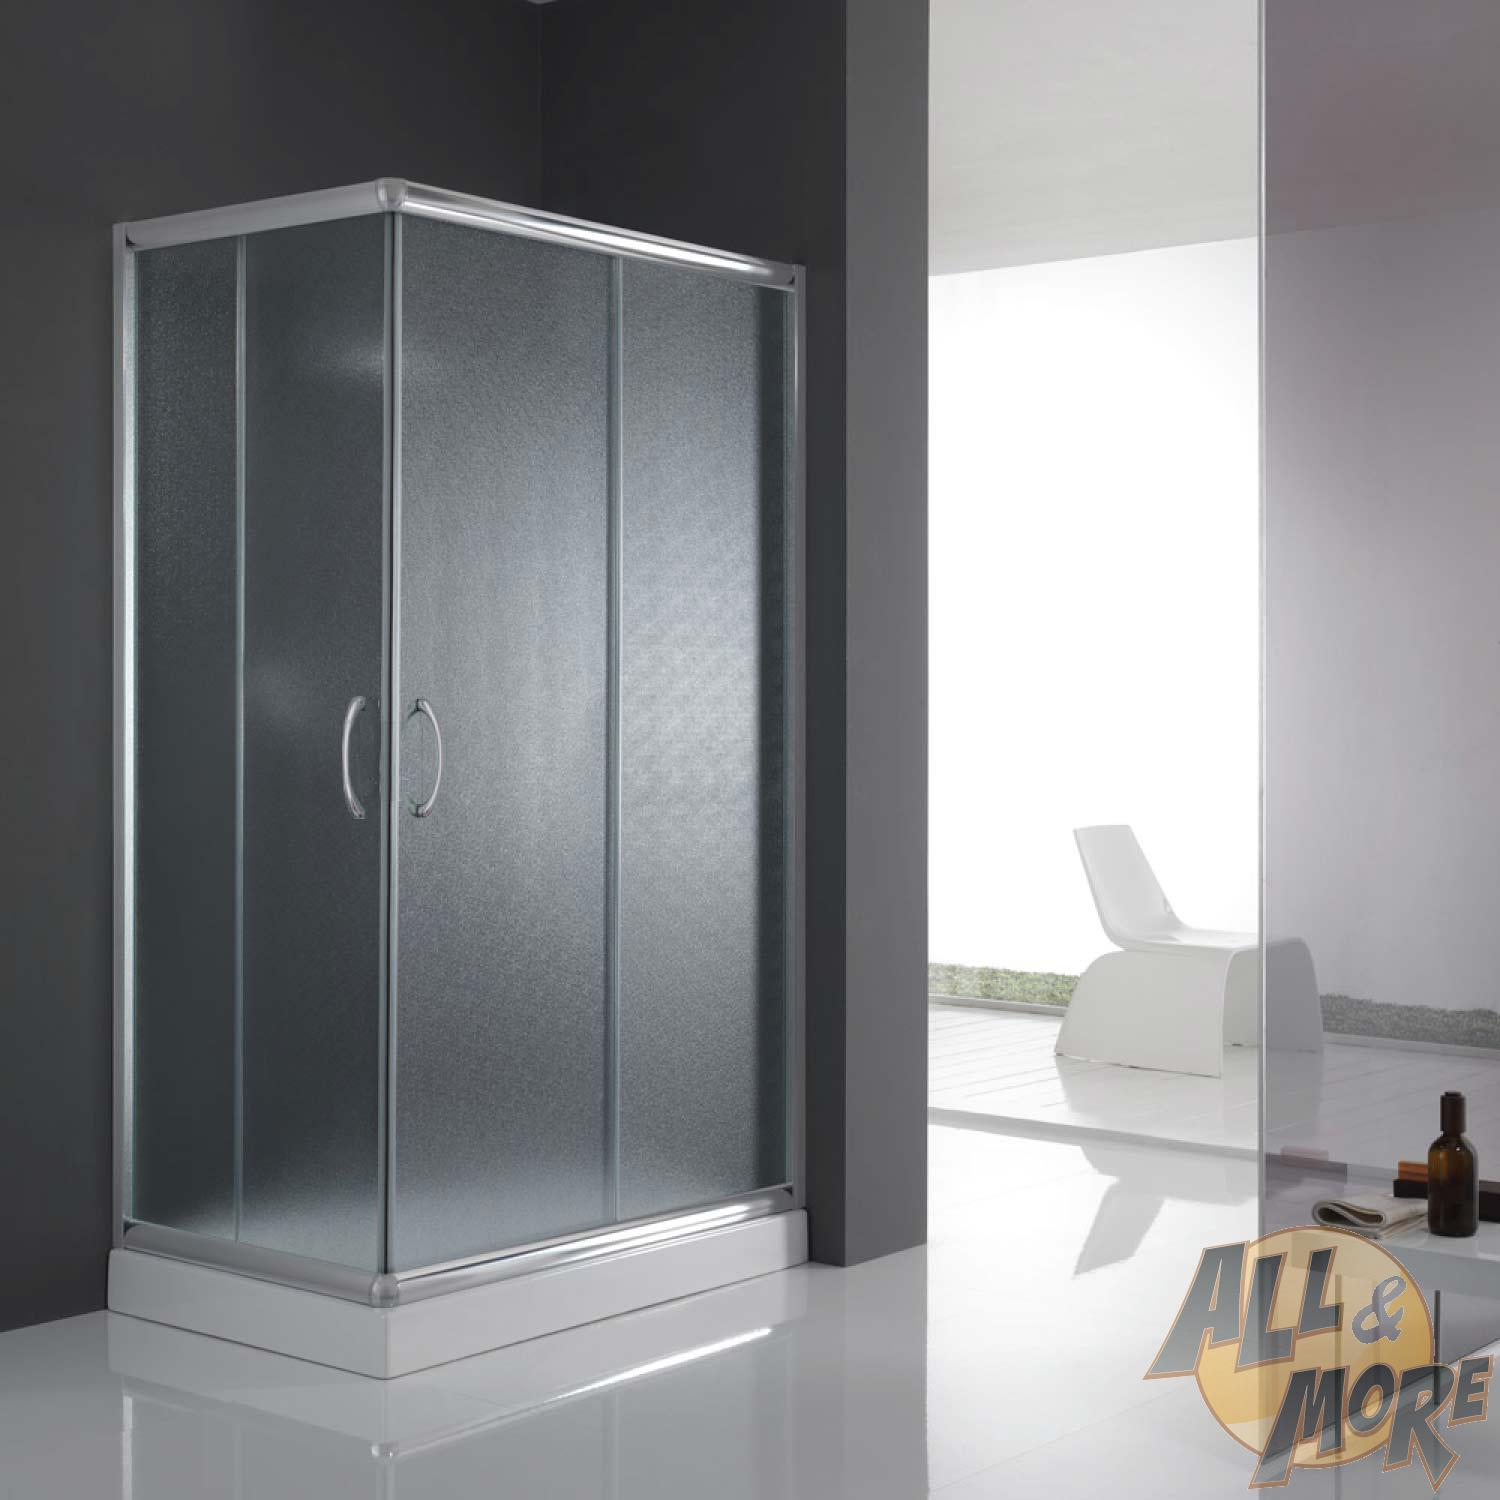 cabine de douche paroi de douche 120x90 h185 cm verre opaque angulaire alabama ebay. Black Bedroom Furniture Sets. Home Design Ideas